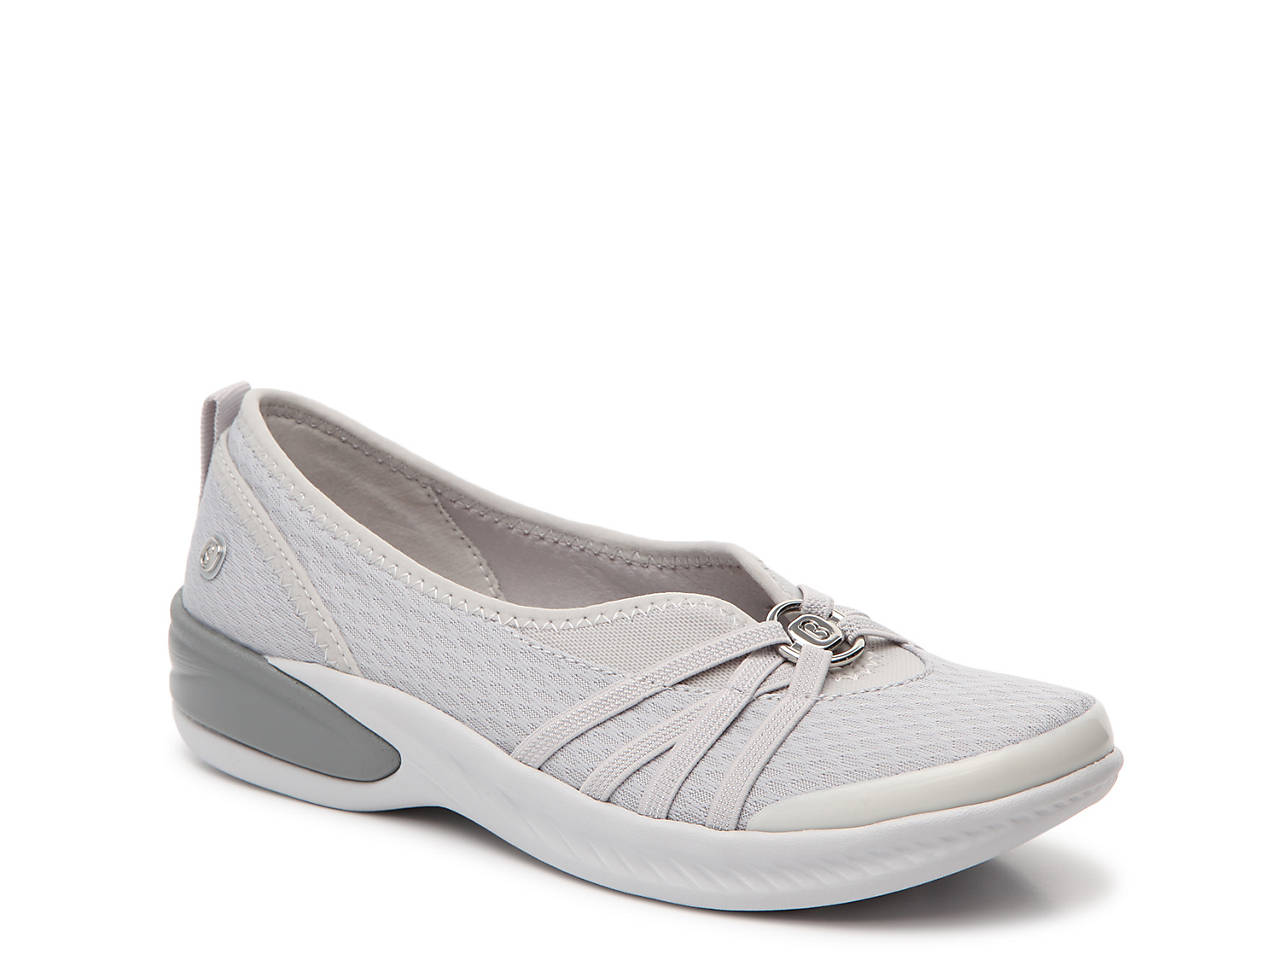 BZEES Niche Slip-On Shoe - Wide Width Available NpOhk